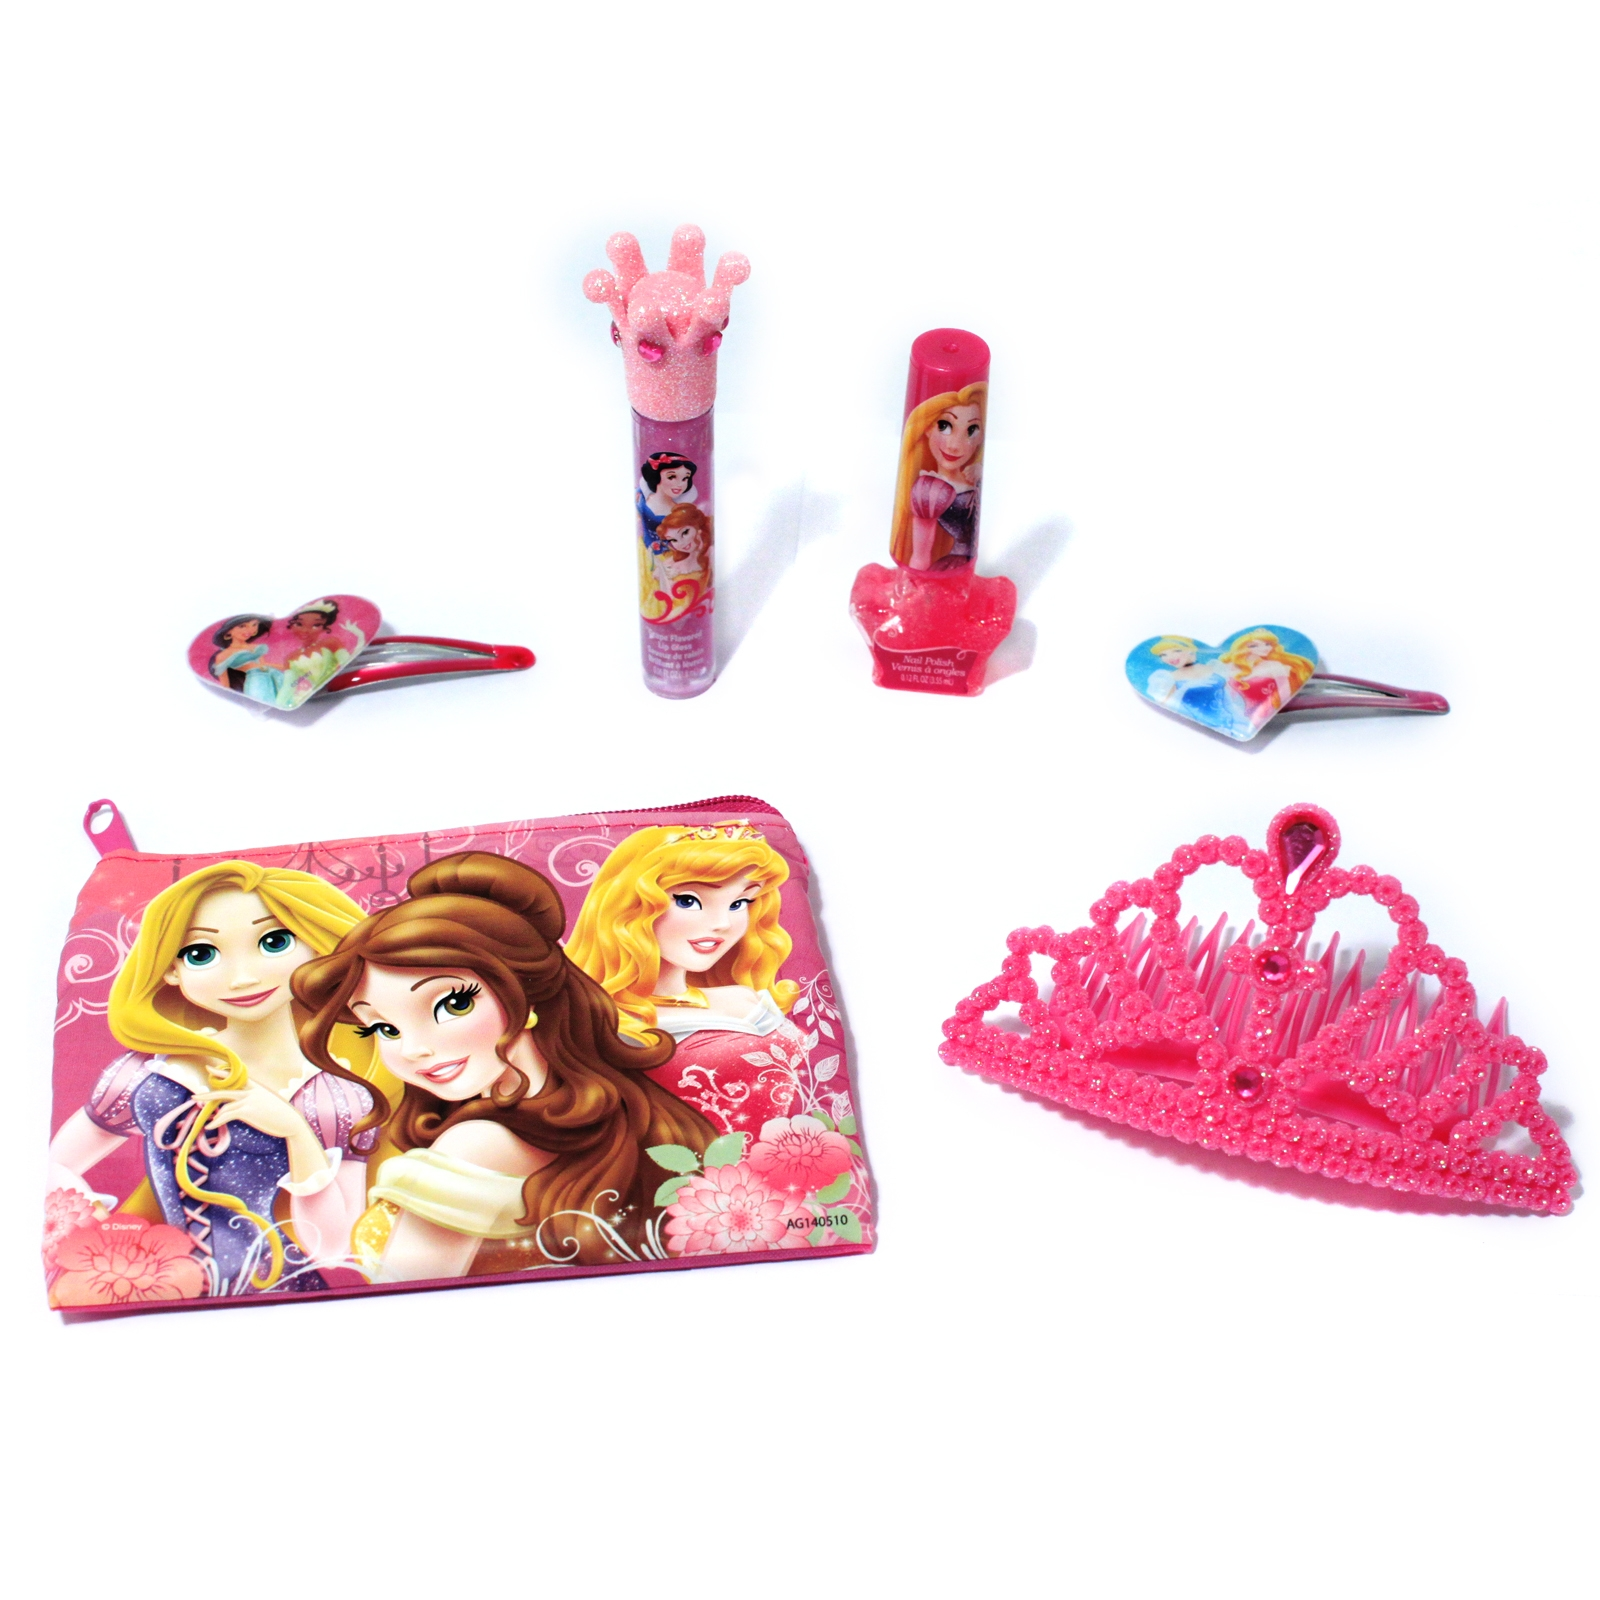 Disney Princess Girls Cosmetics Dress-up Accessories Set (6 Piece) at Sears.com